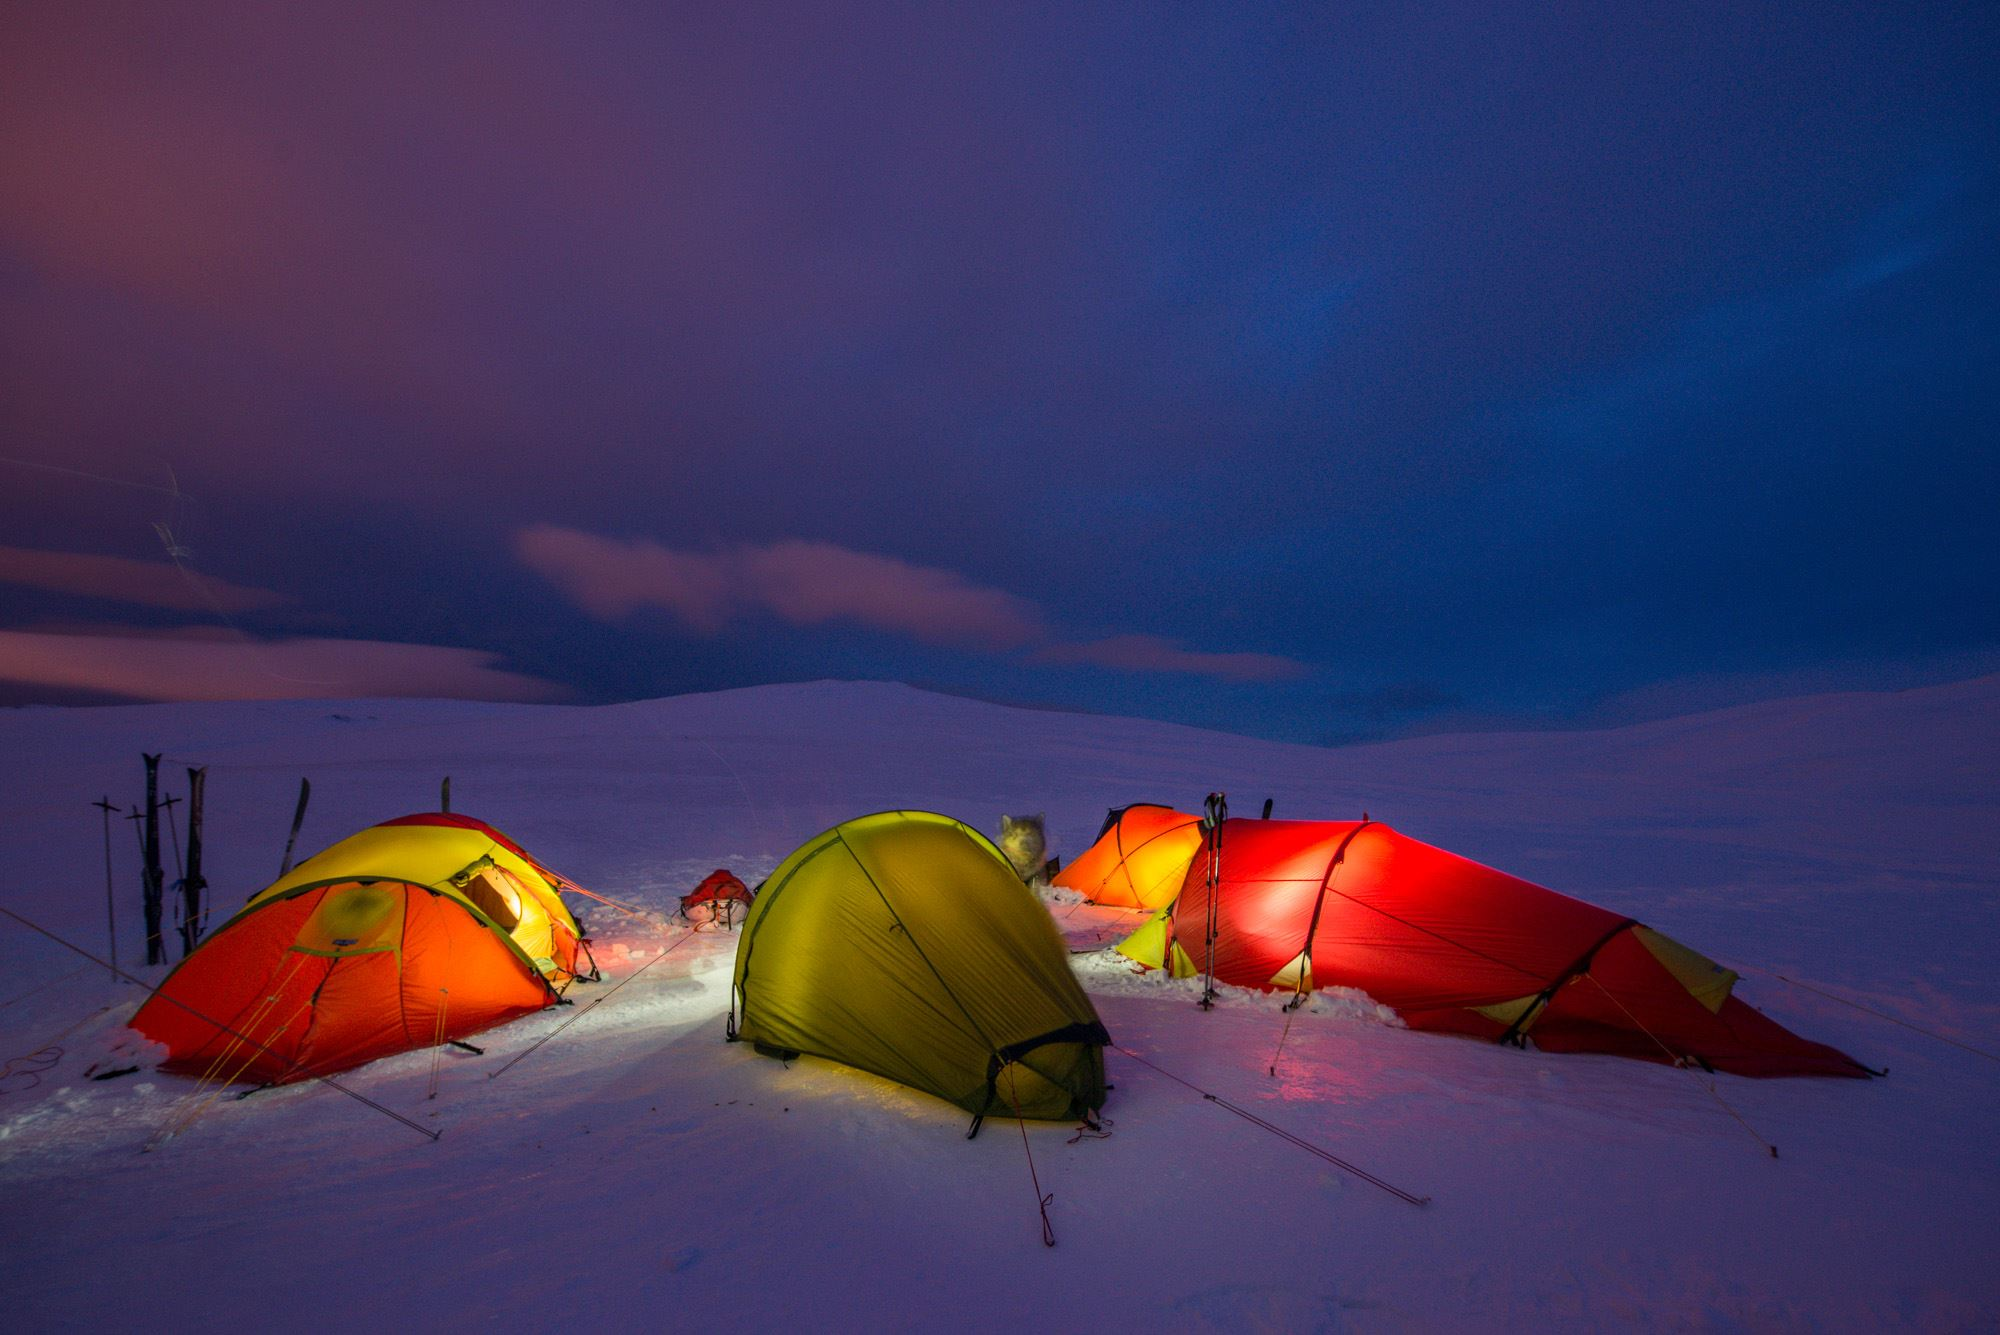 Northern Lights Polar Camp